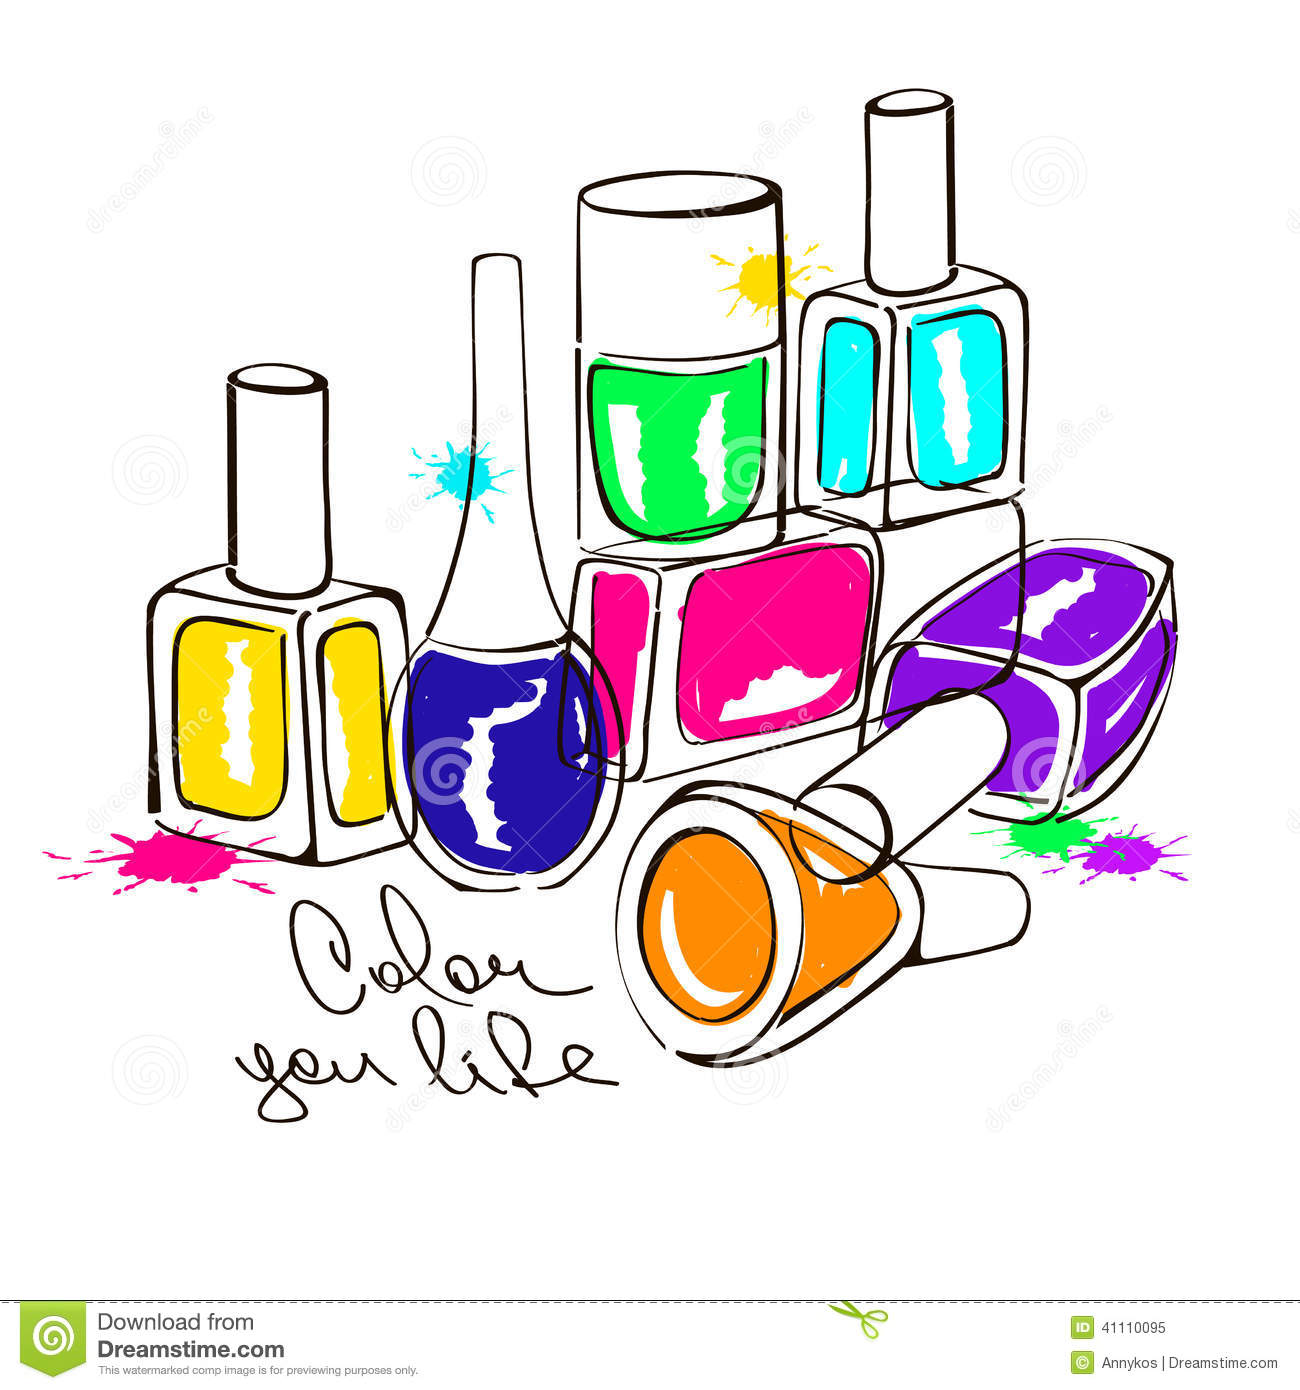 Illustration With Nail Polish Bottles Stock Vector - Image: 41110095 Nail Polish Bottles Clipart